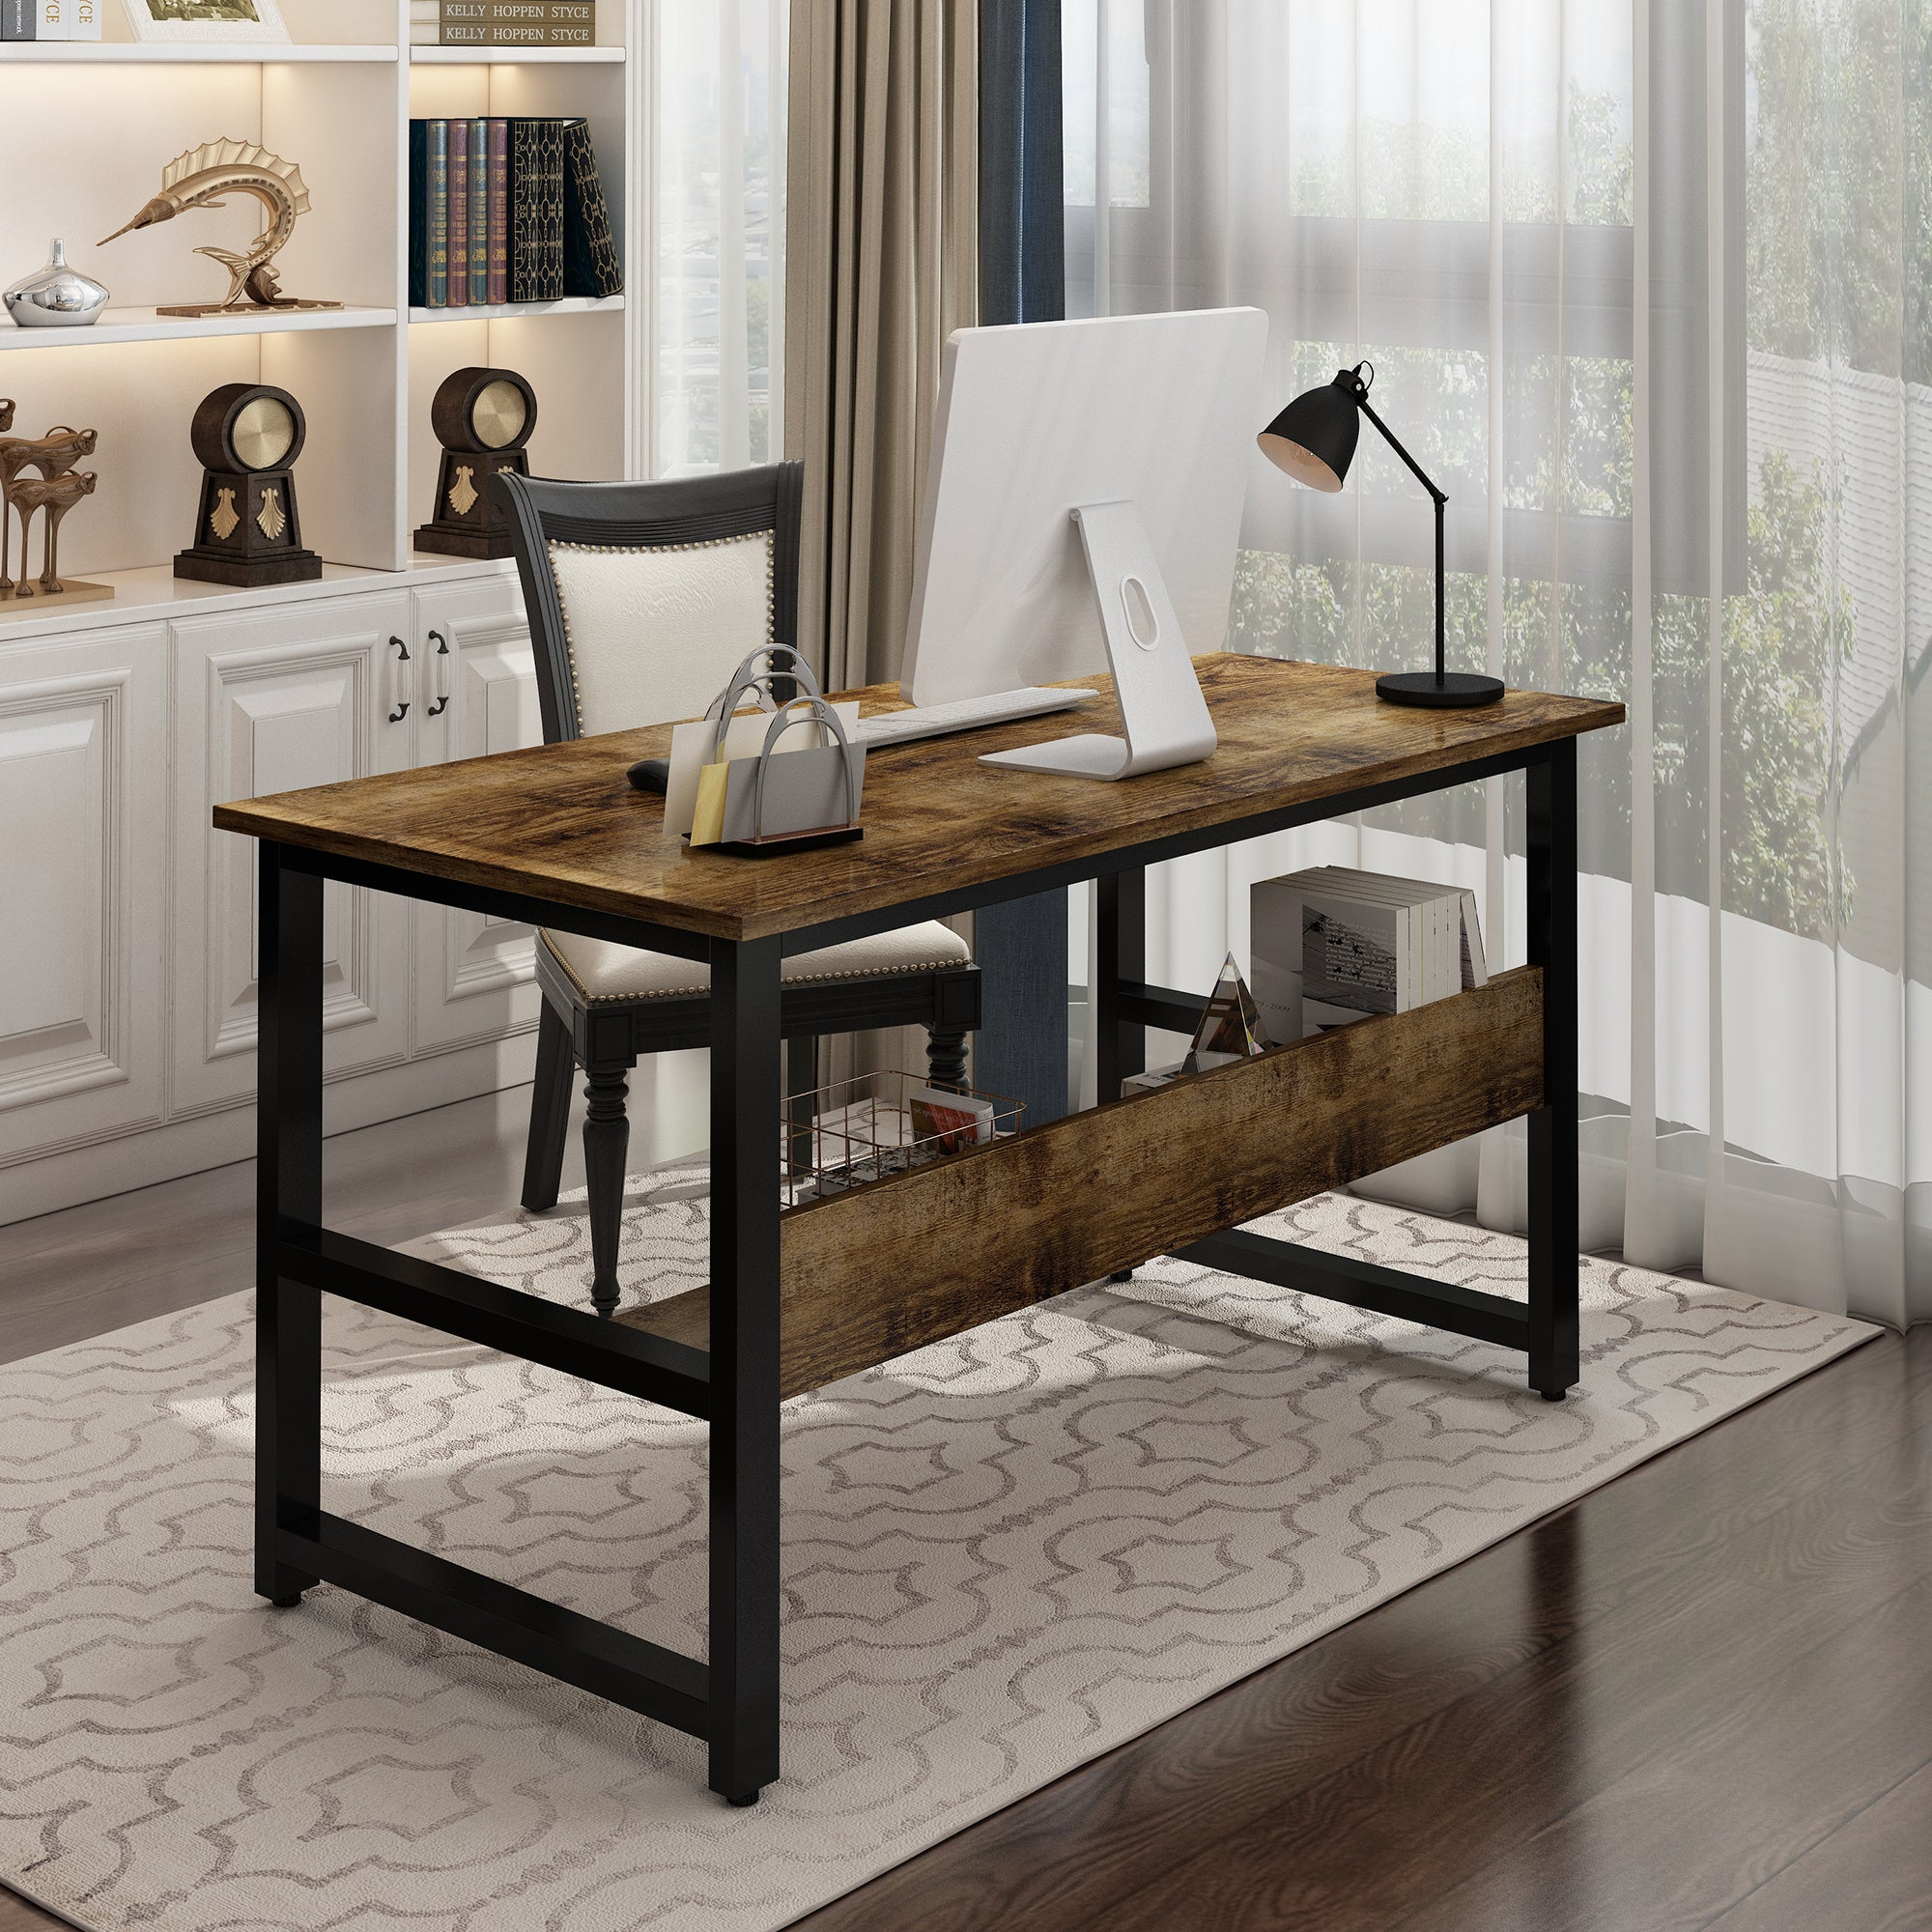 Multi- Purpose Home Office Writing Desk